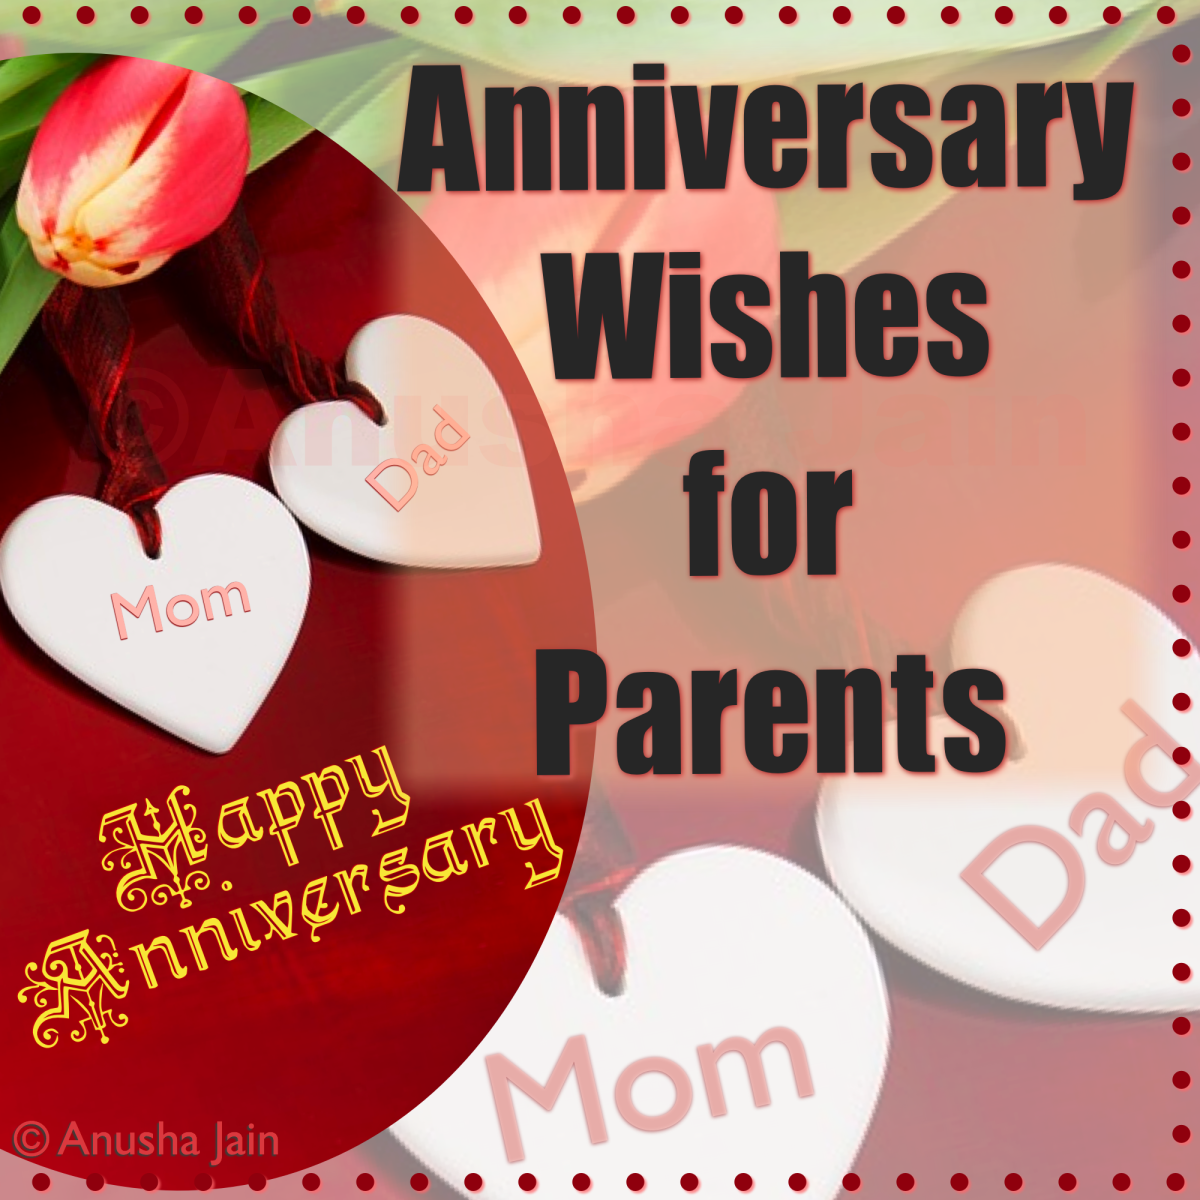 Poems and Messages to say Happy Anniversary to your parents.